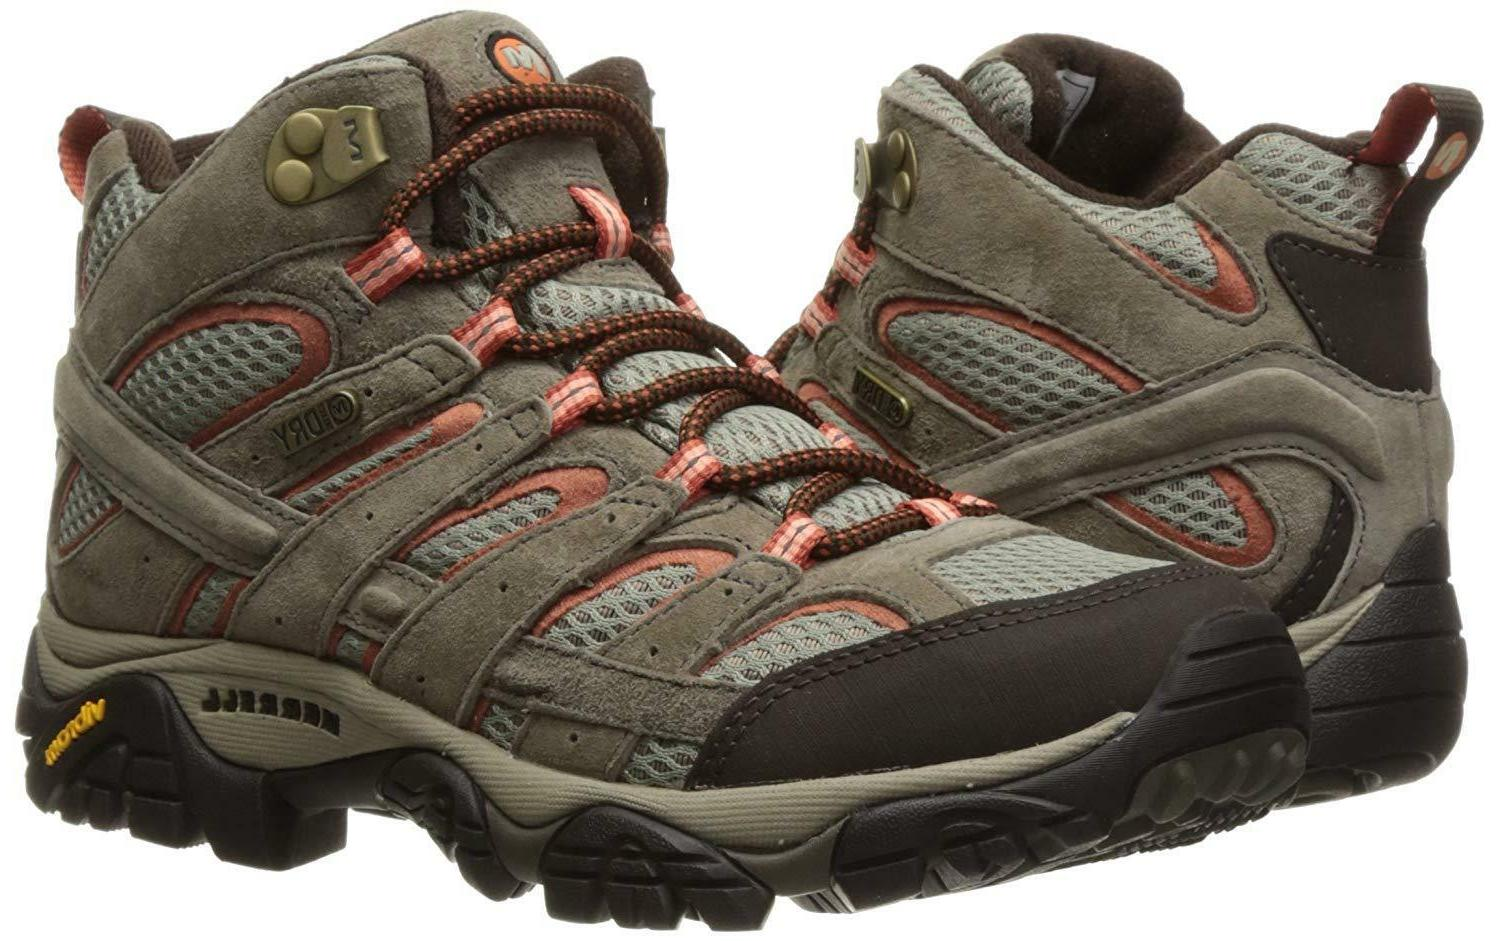 Merrell Women's Moab 2 Mid Waterproof Boot